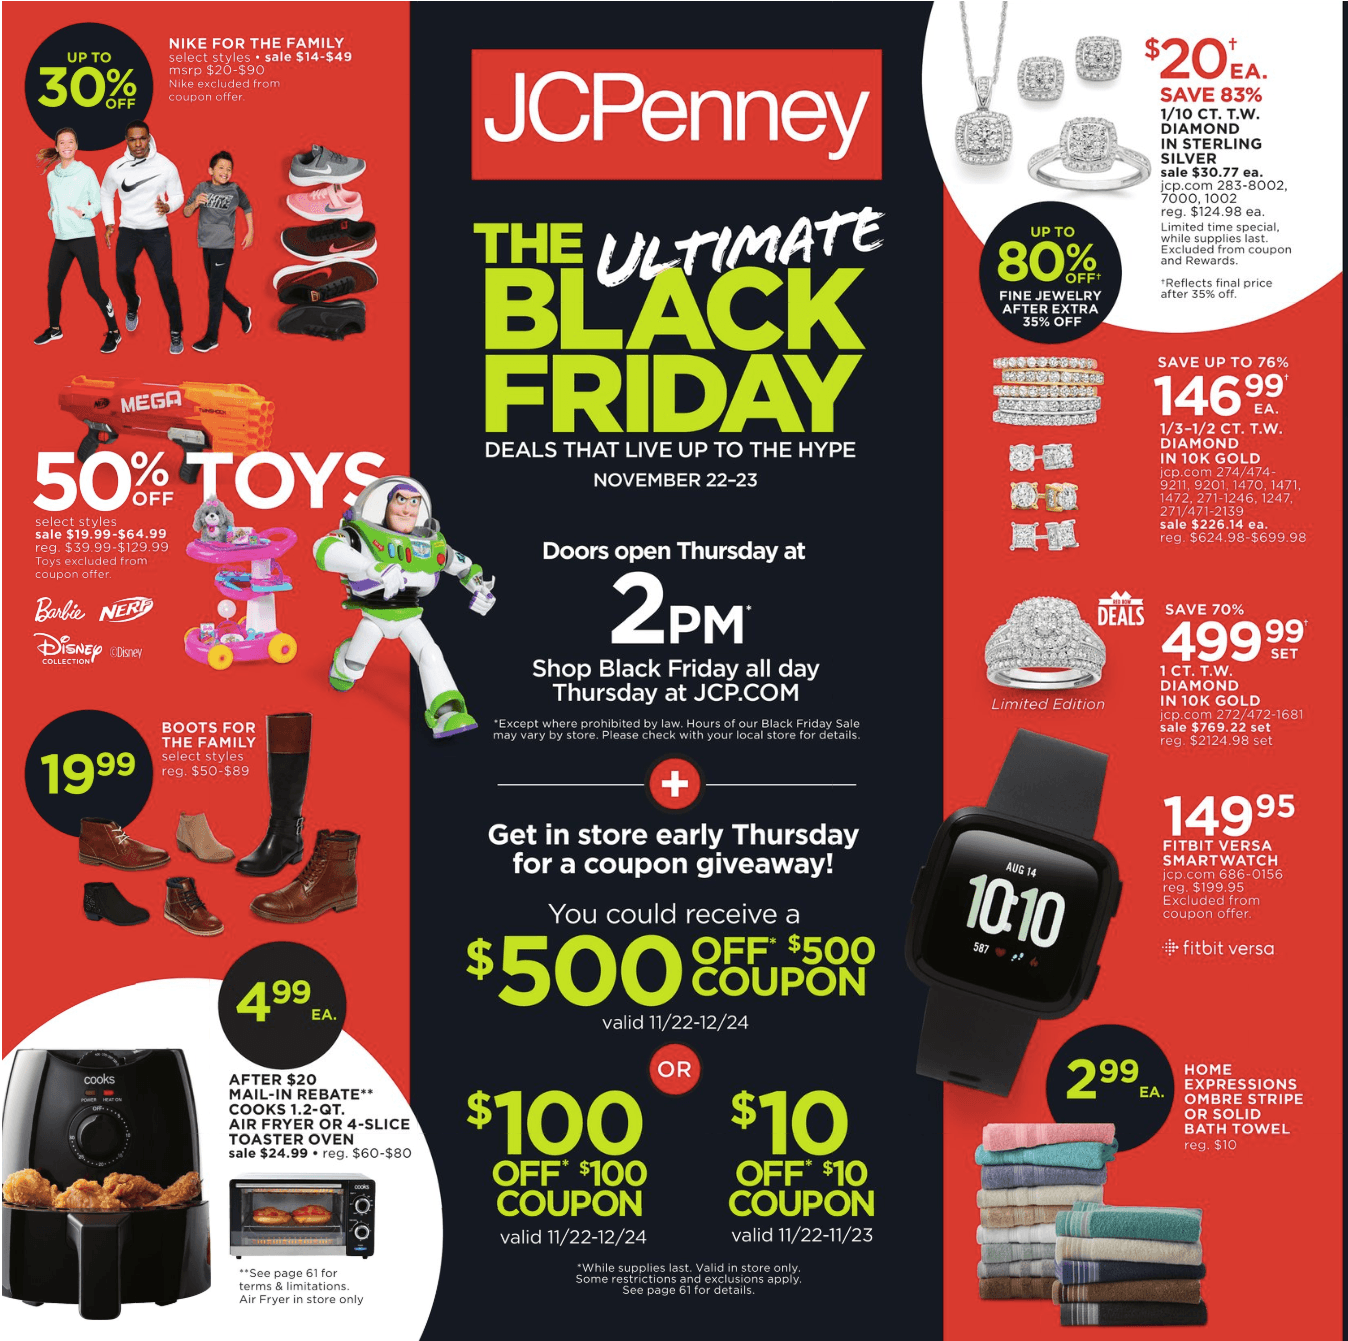 c16551bd6ba JCPenney Black Friday 2018 Page 1